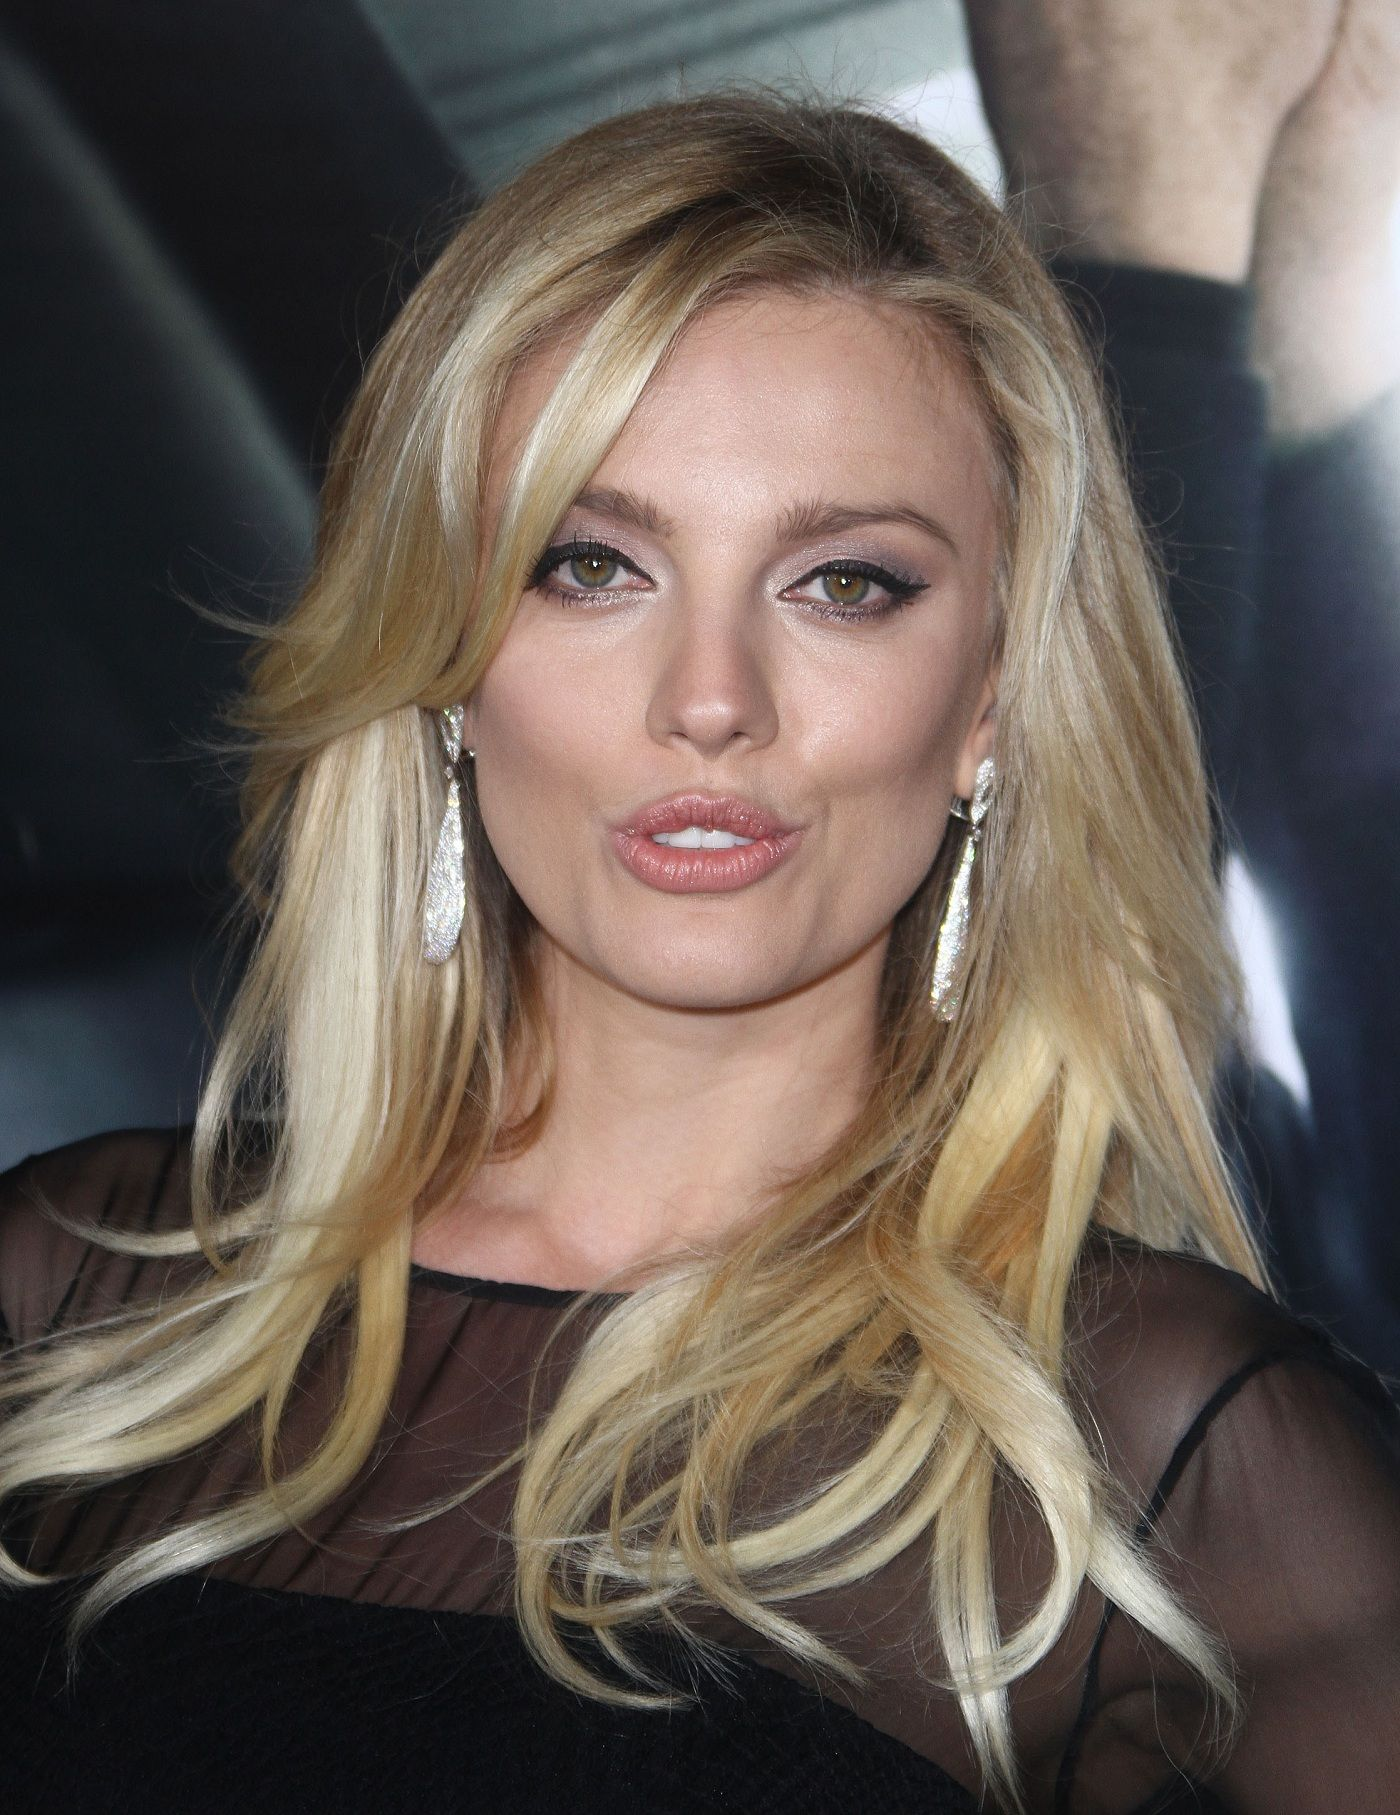 bar paly mark wahlbergbar paly foto, bar paly news, bar paly insta, bar paly wiki, bar paly mark wahlberg, bar paly net worth, bar paly wallpaper, bar paly instagram, bar paly imdb, bar paly how i met your mother, bar paly husband, bar paly boyfriend, bar paly height, bar paly facebook